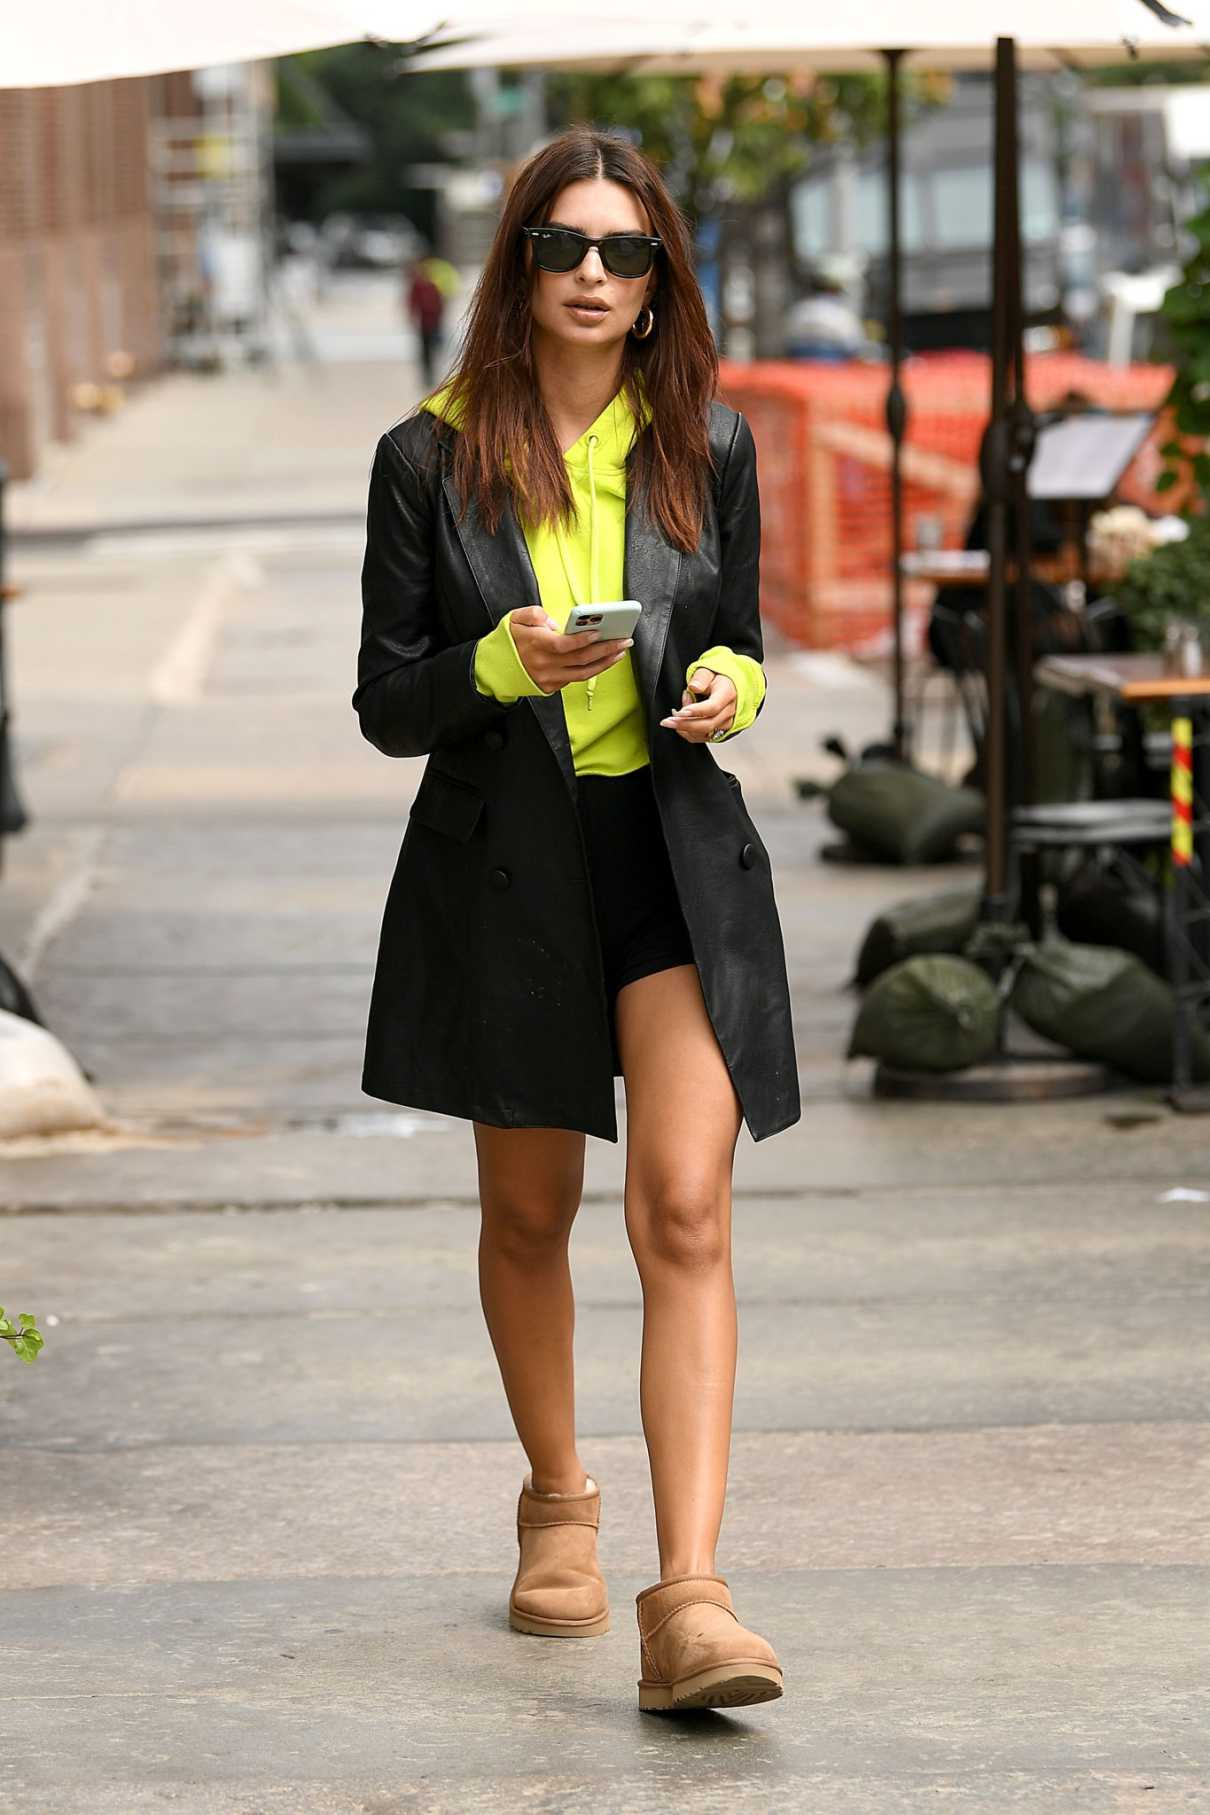 Emily Ratajkowski in a Black Leather Blazer